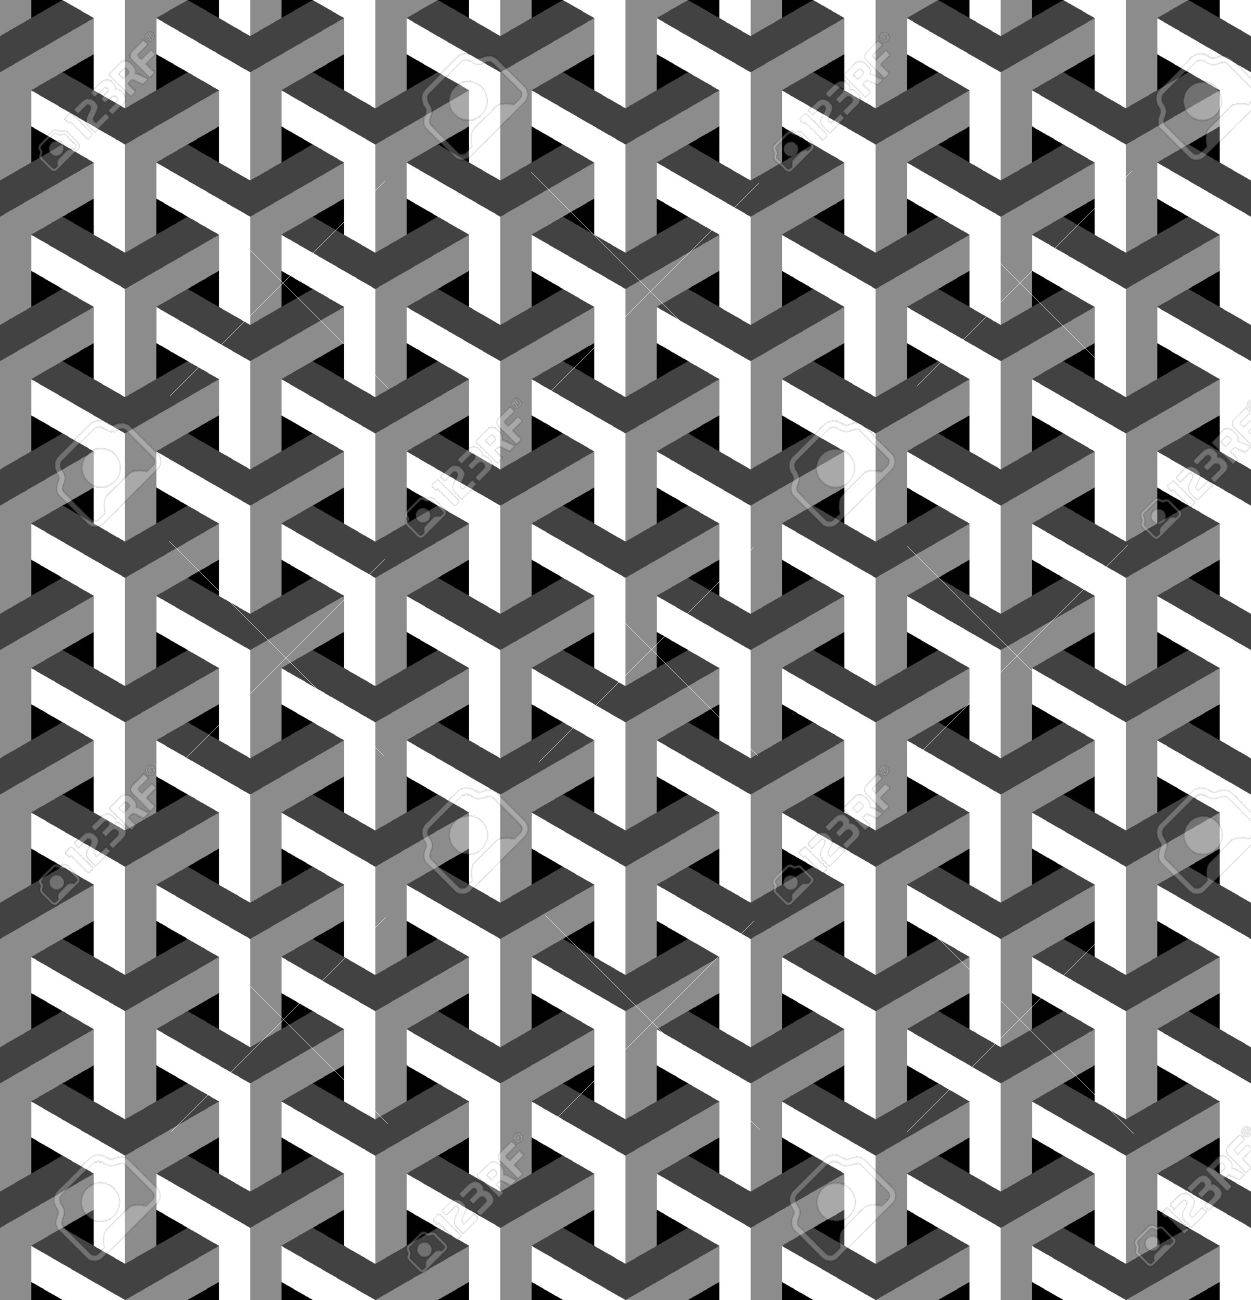 Buy Isometric Paper 41037238 Abstract Isometric 3d Seamless Pattern  Background Ideal For Fabric Design Wrapping Paper